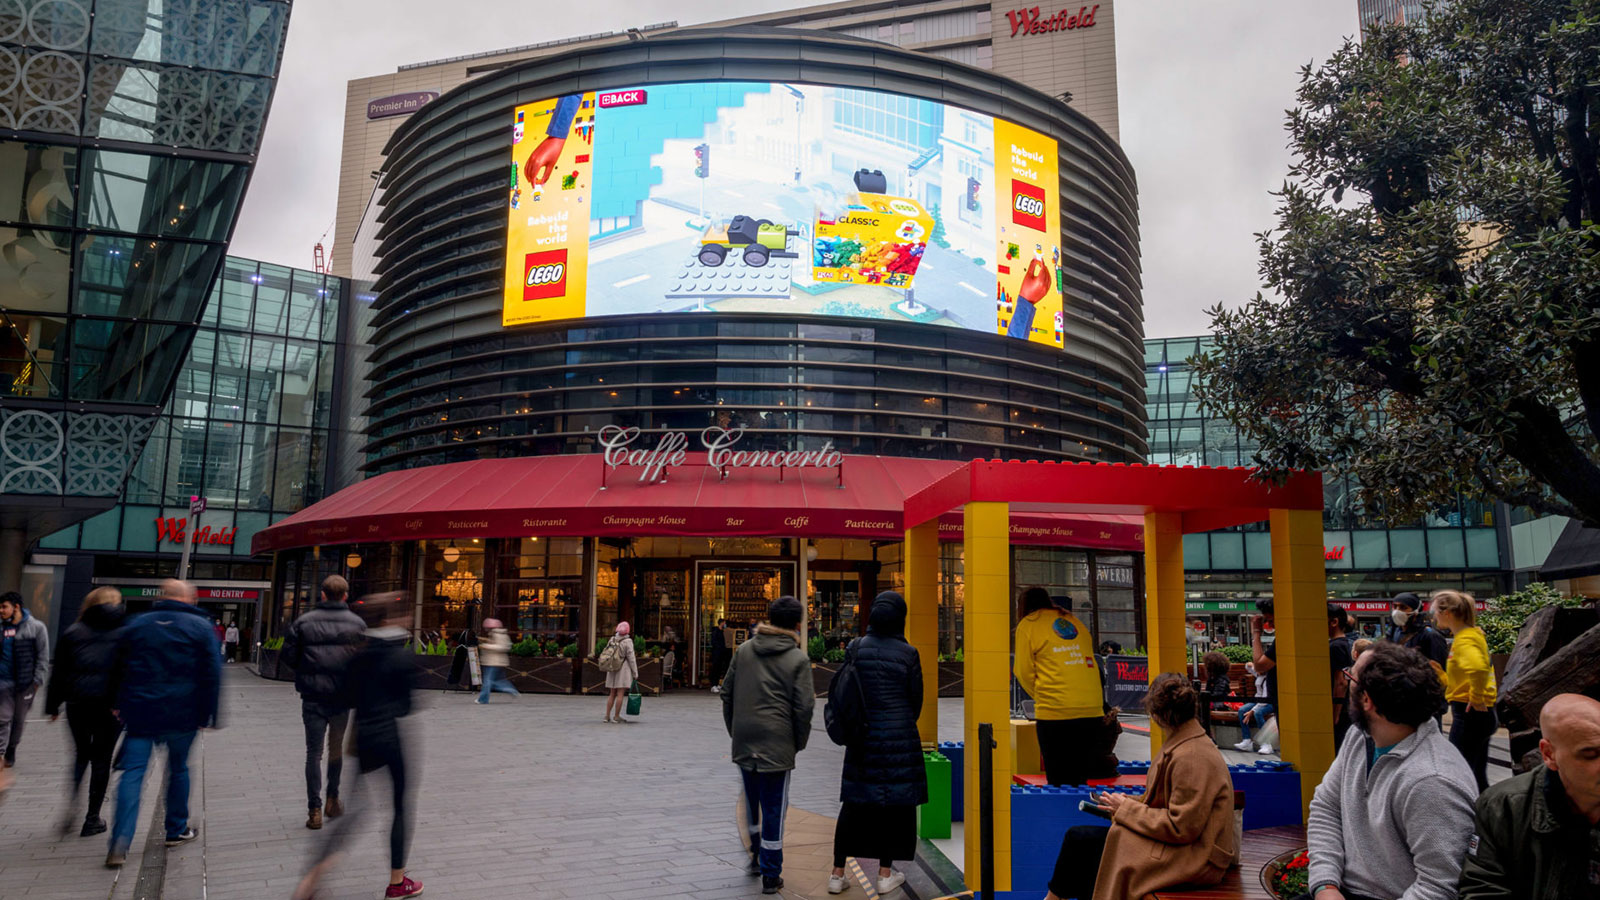 Lego interactive haptic experience at Westfield Stratford